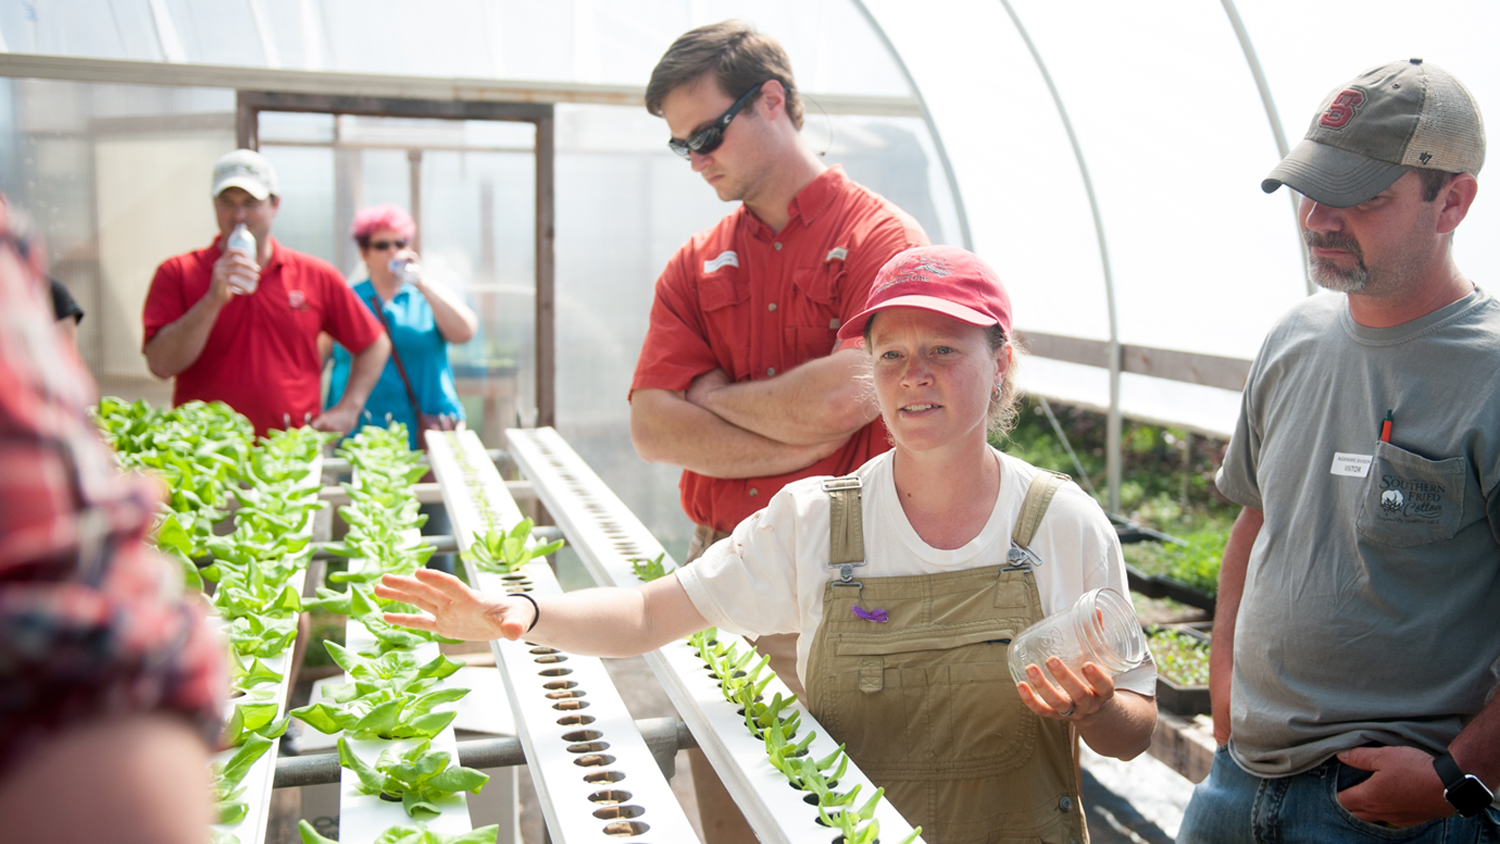 NC Farm School - people in a greenhouse.